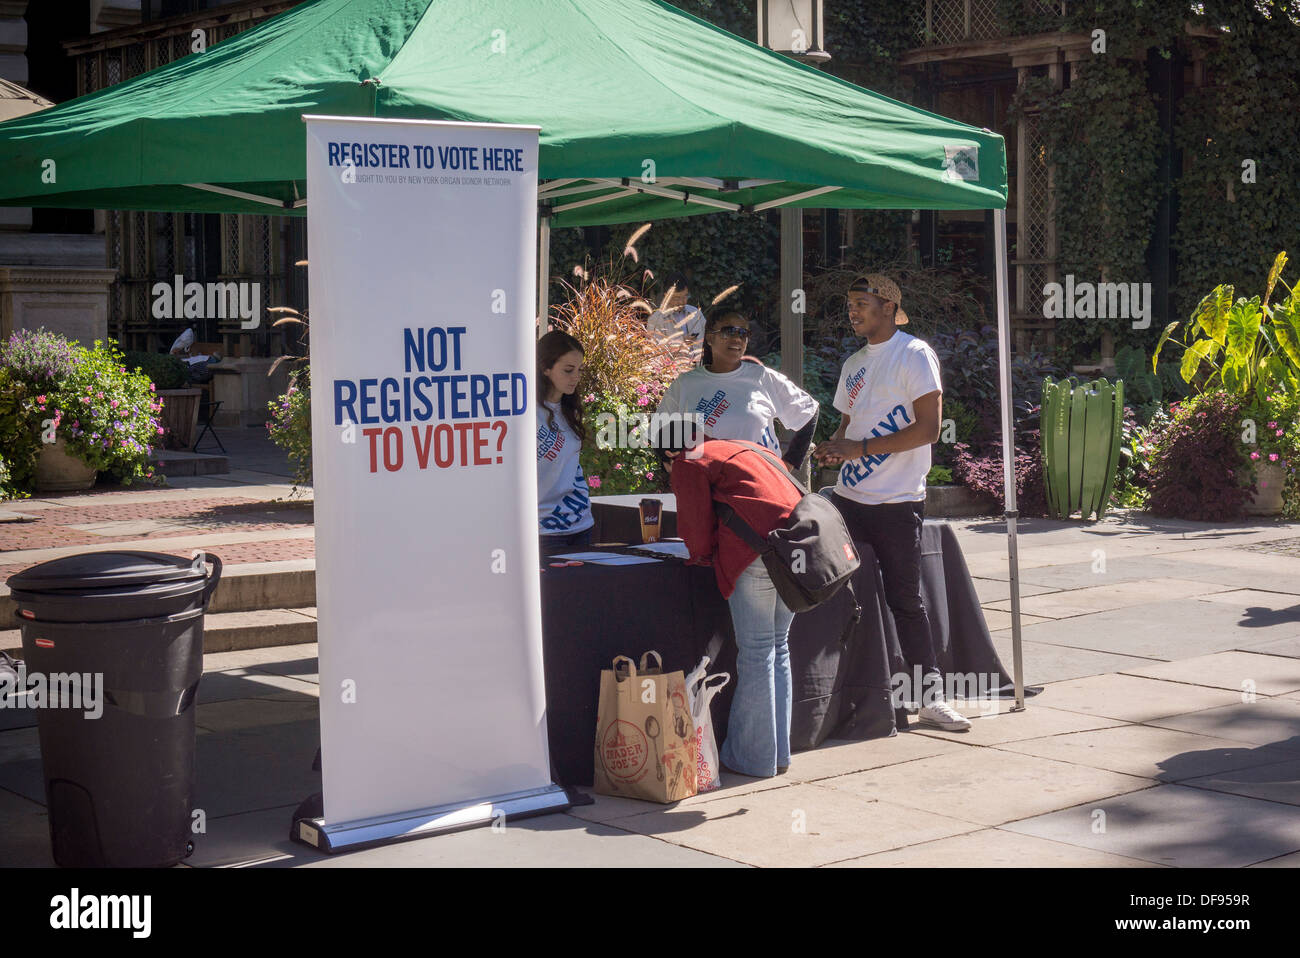 Members of the NY Organ Donor Network celebrate National Voter Registration Day in Bryant Park in New York - Stock Image